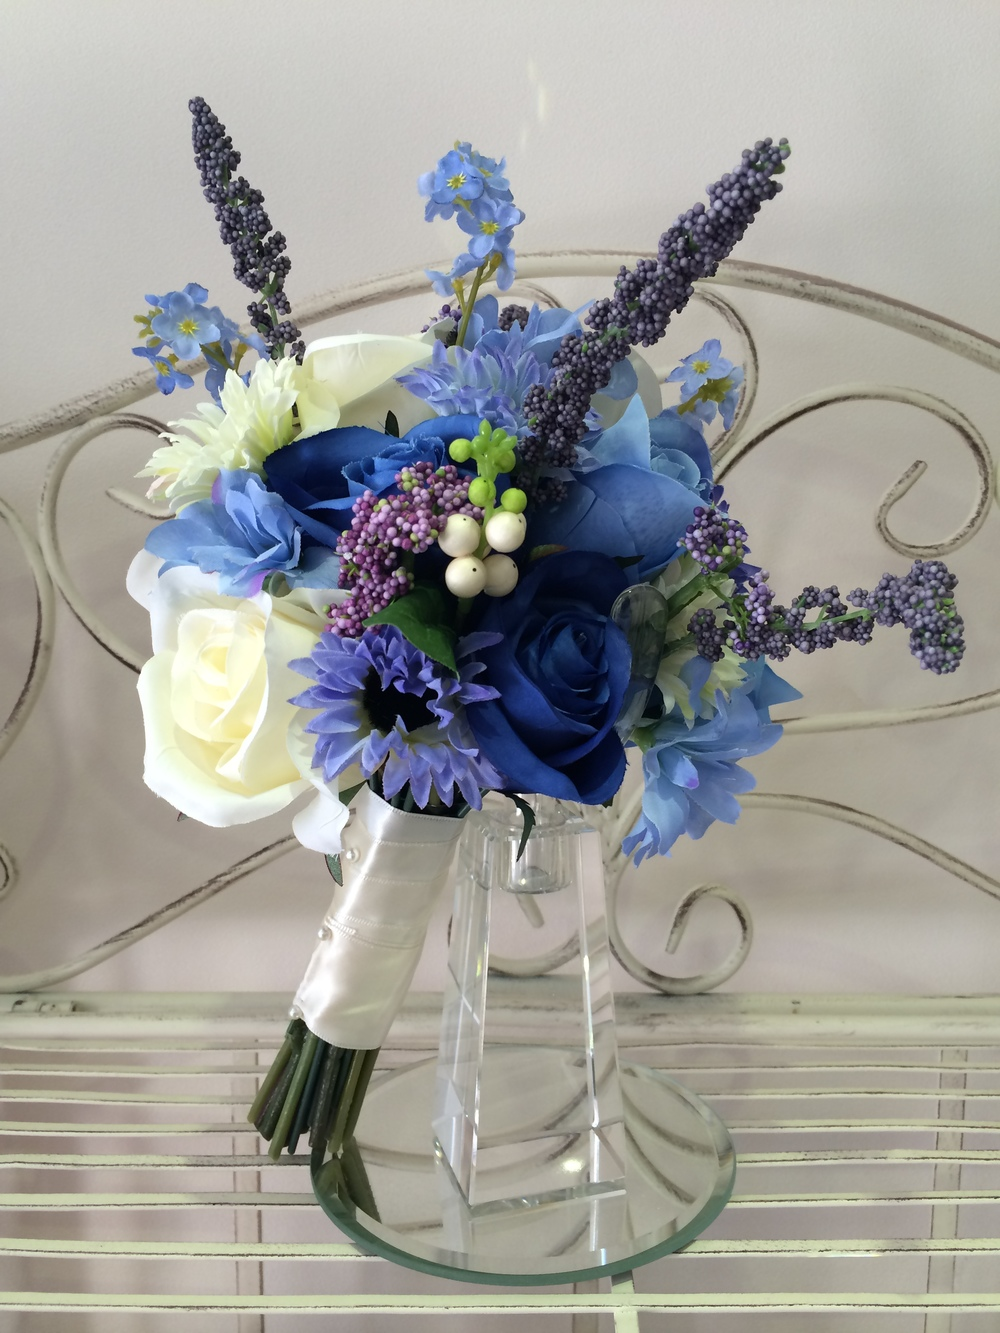 Bridesmaids Bouquet With Blue Daisies, Cream         & Blue Roses, Lavender & Forgetmenots